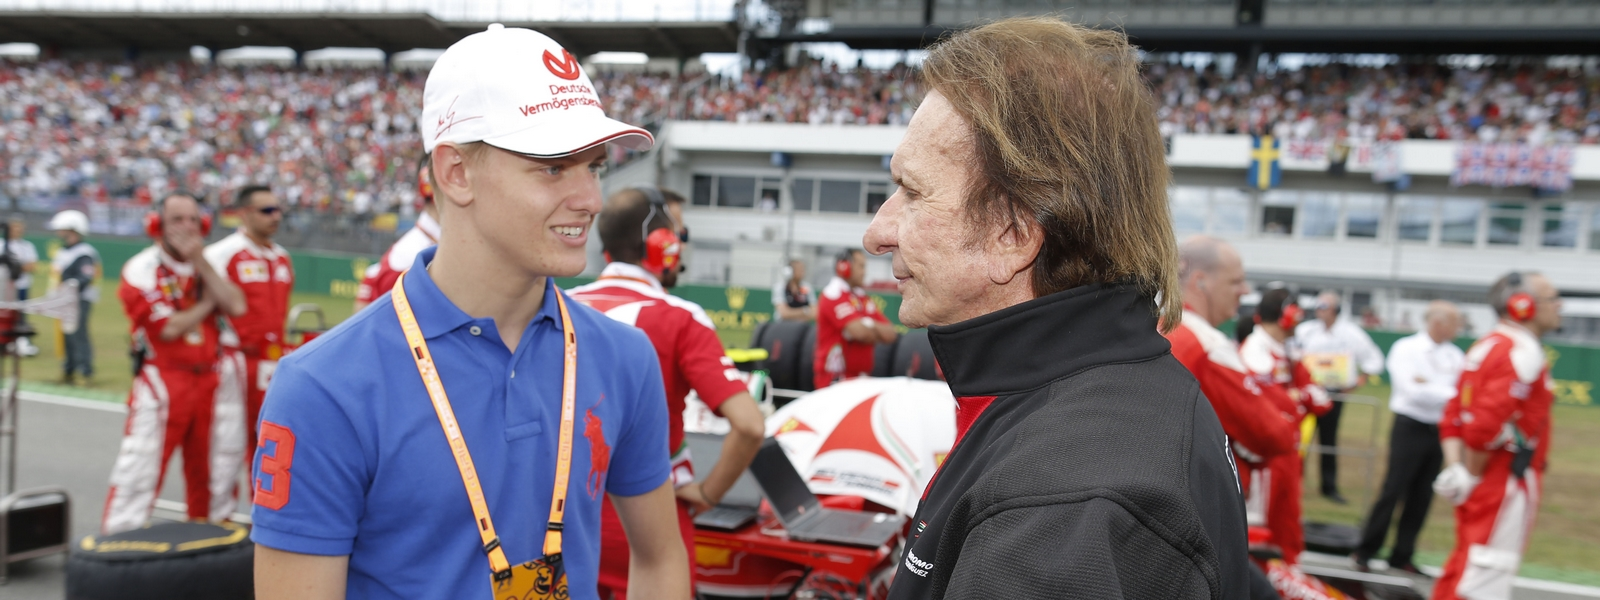 Motorsports: FIA Formula One World Championship 2016, Grand Prix of Germany,  Mick Schumacher, Emerson Fittipaldi *** Local Caption *** +++ www.hoch-zwei.net +++ copyright: HOCH ZWEI +++